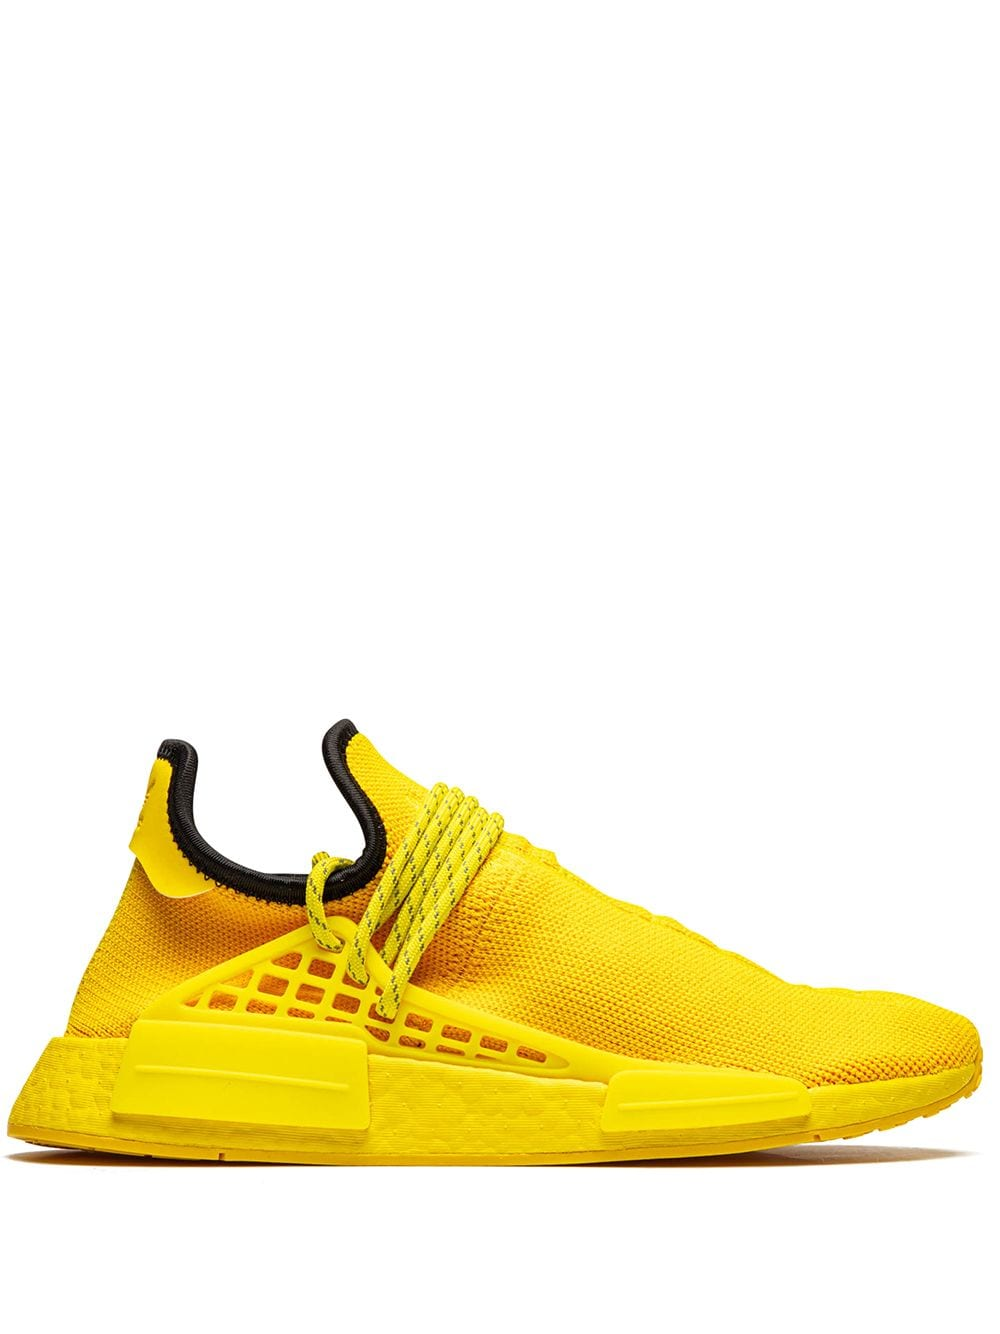 adidas HU NMD low-top sneakers - Yellow von adidas